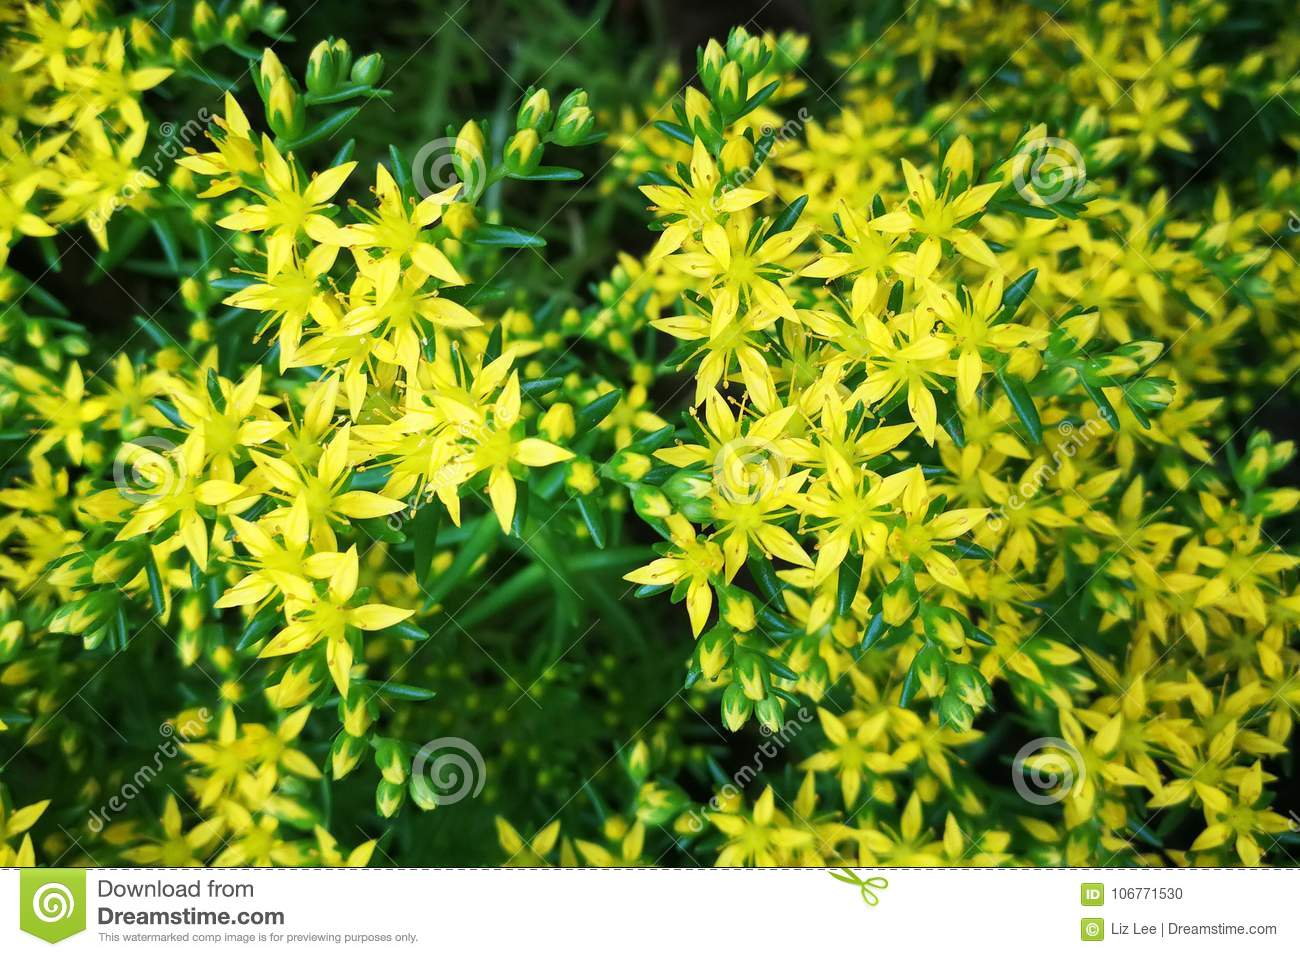 Little yellow flowers stock photo image of grass flower 106771530 download little yellow flowers stock photo image of grass flower 106771530 mightylinksfo